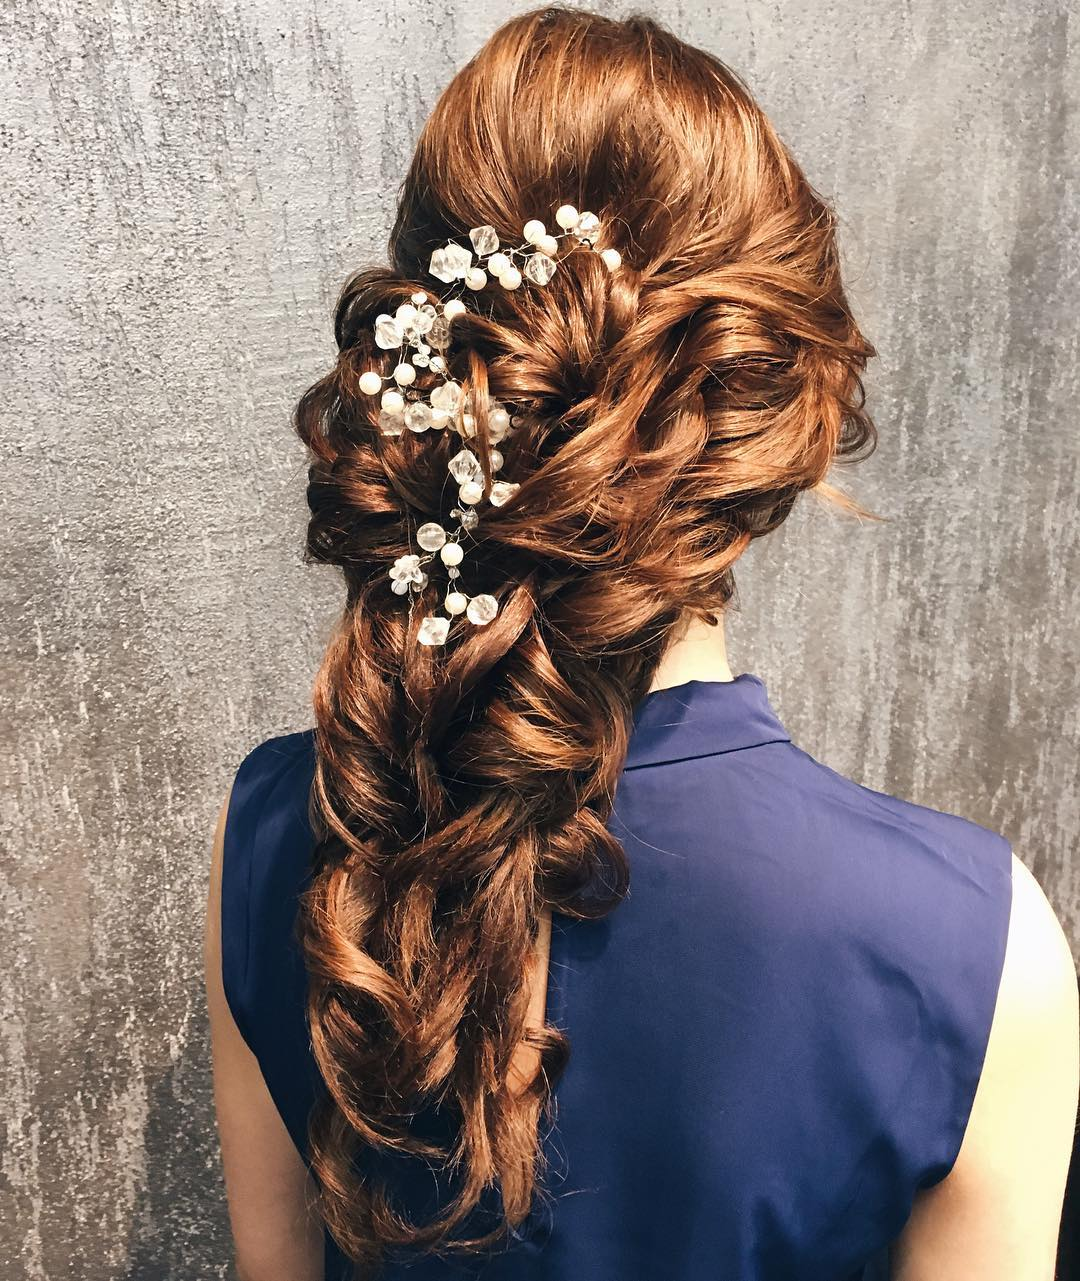 Hairstyles For A Quinceanera 45 Chic Quinceanera Hairstyles Best Styles For Your Celebration